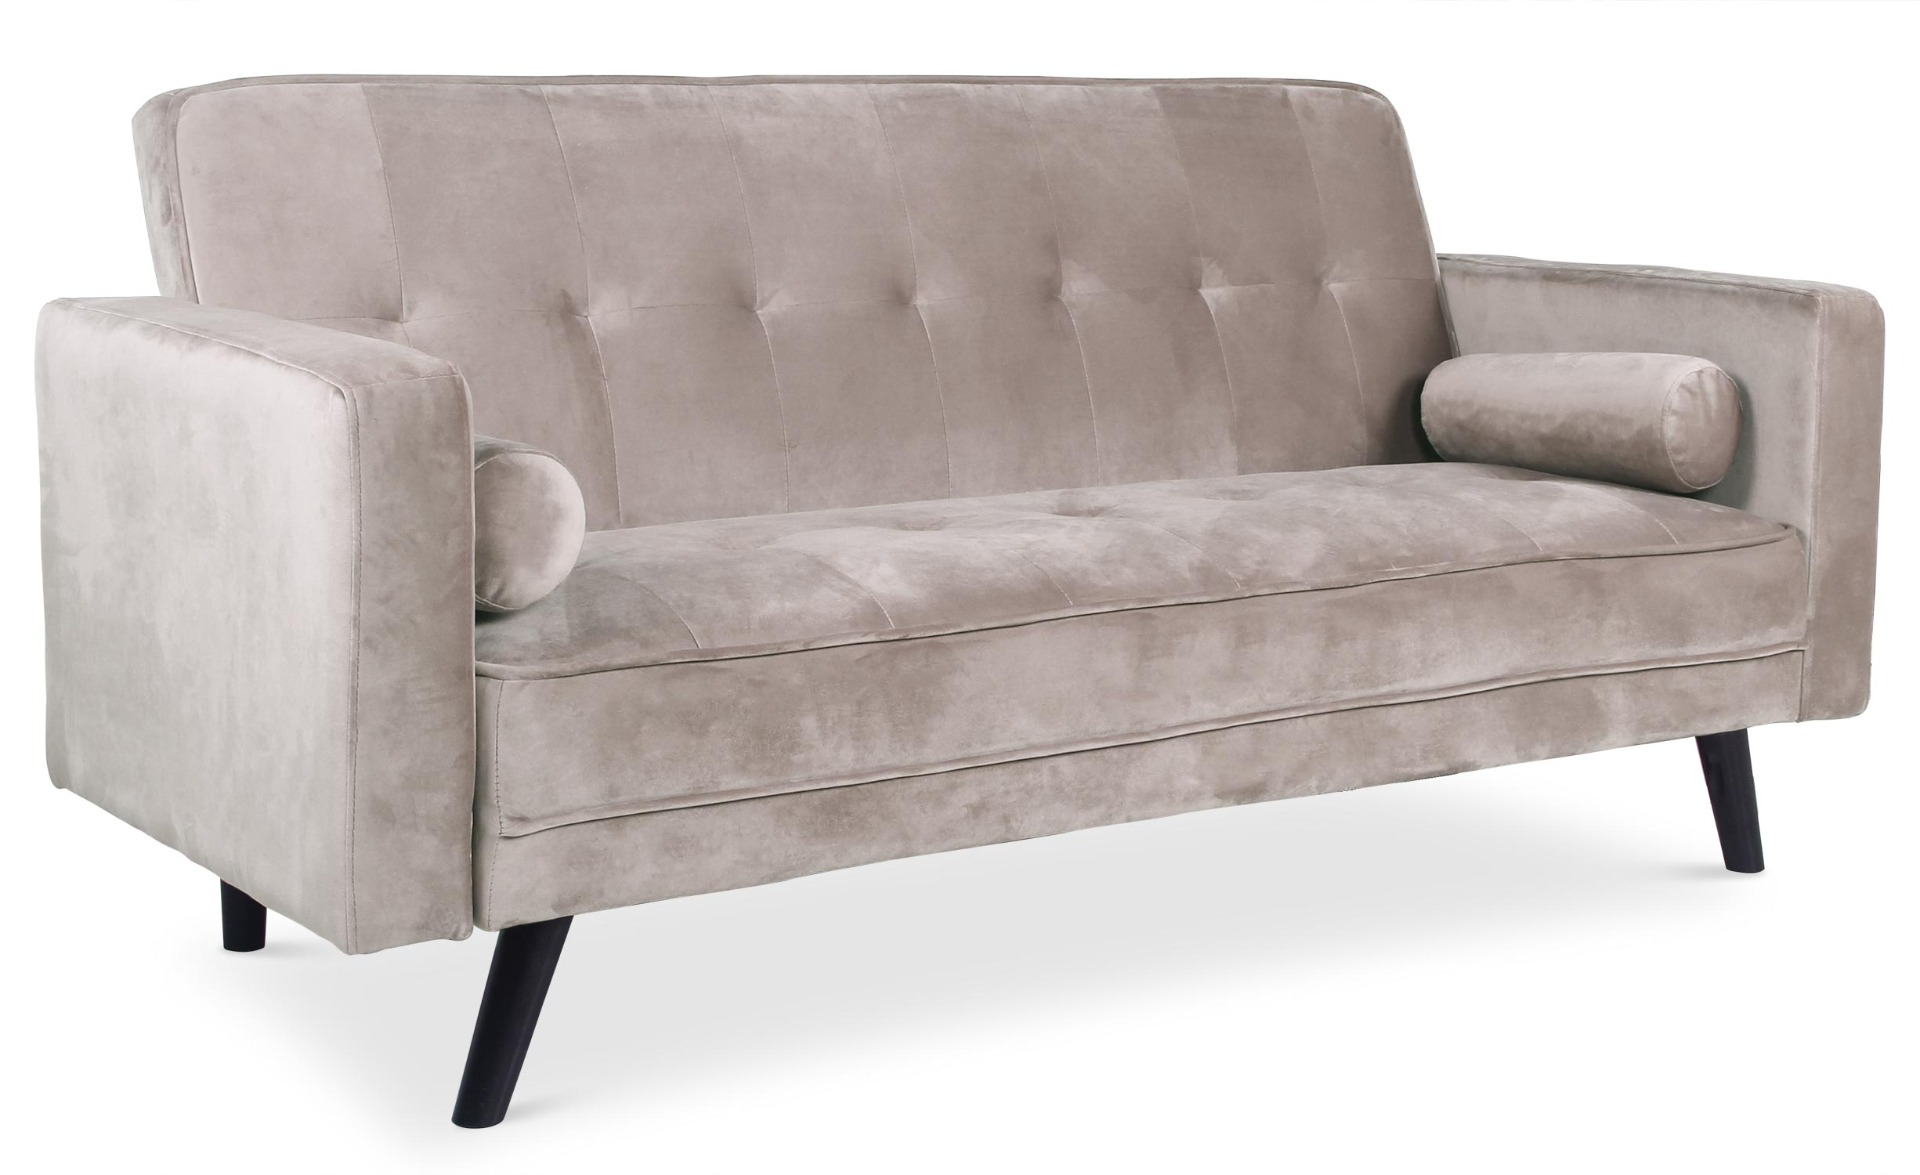 Canapé convertible scandinave Slow Velours Taupe